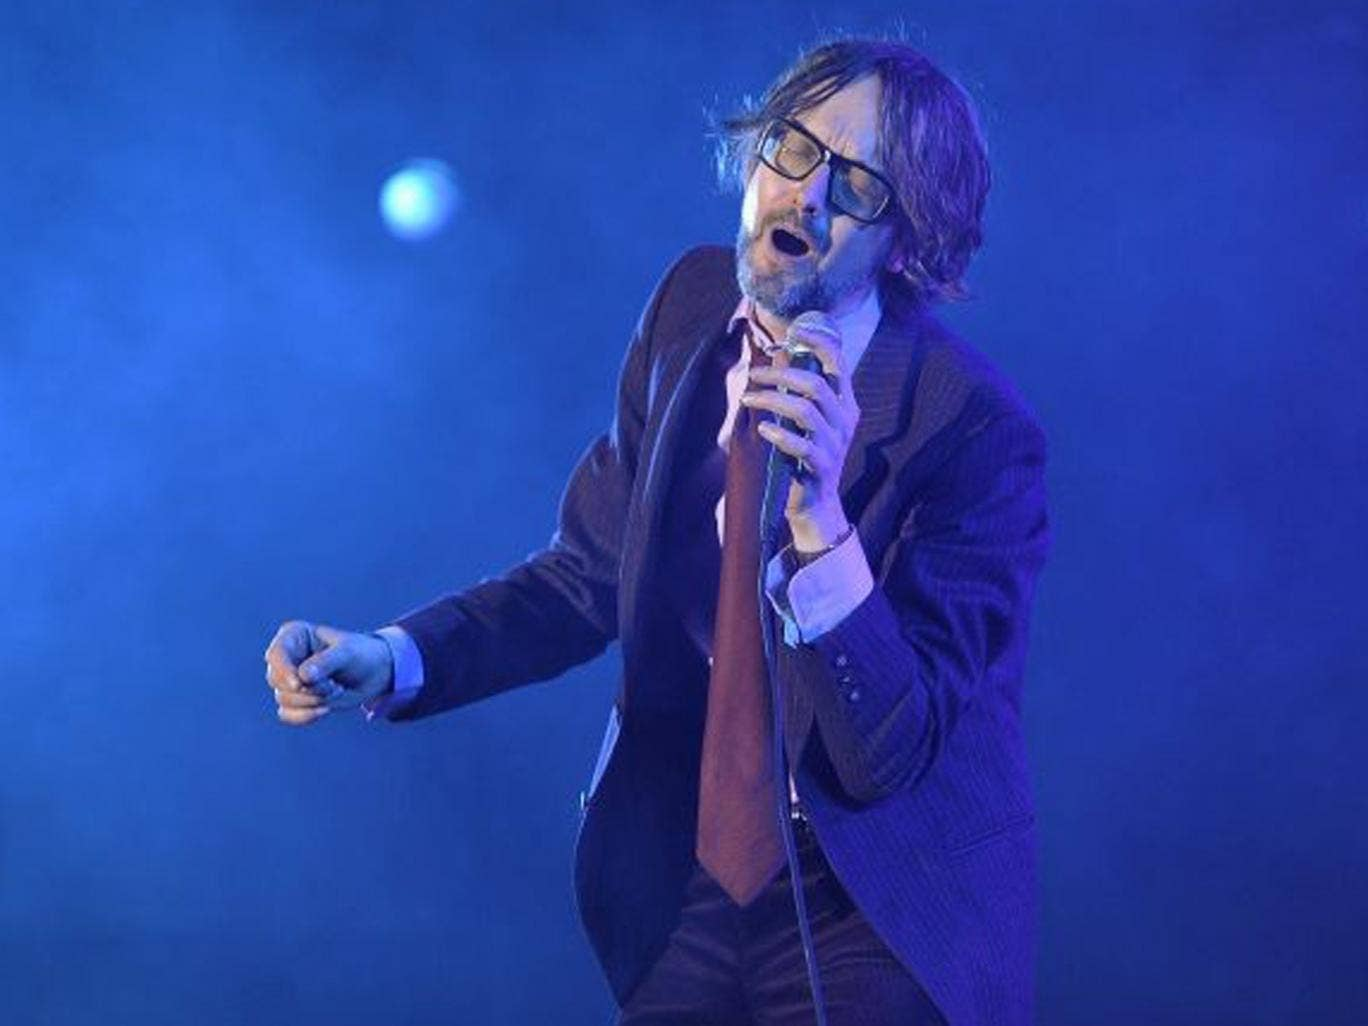 Pulp played a reunion homecoming show in Sheffield – and as a parting shot left a Christmas card to all the attendees which contained a code to download a gift from the band's website on Christmas day